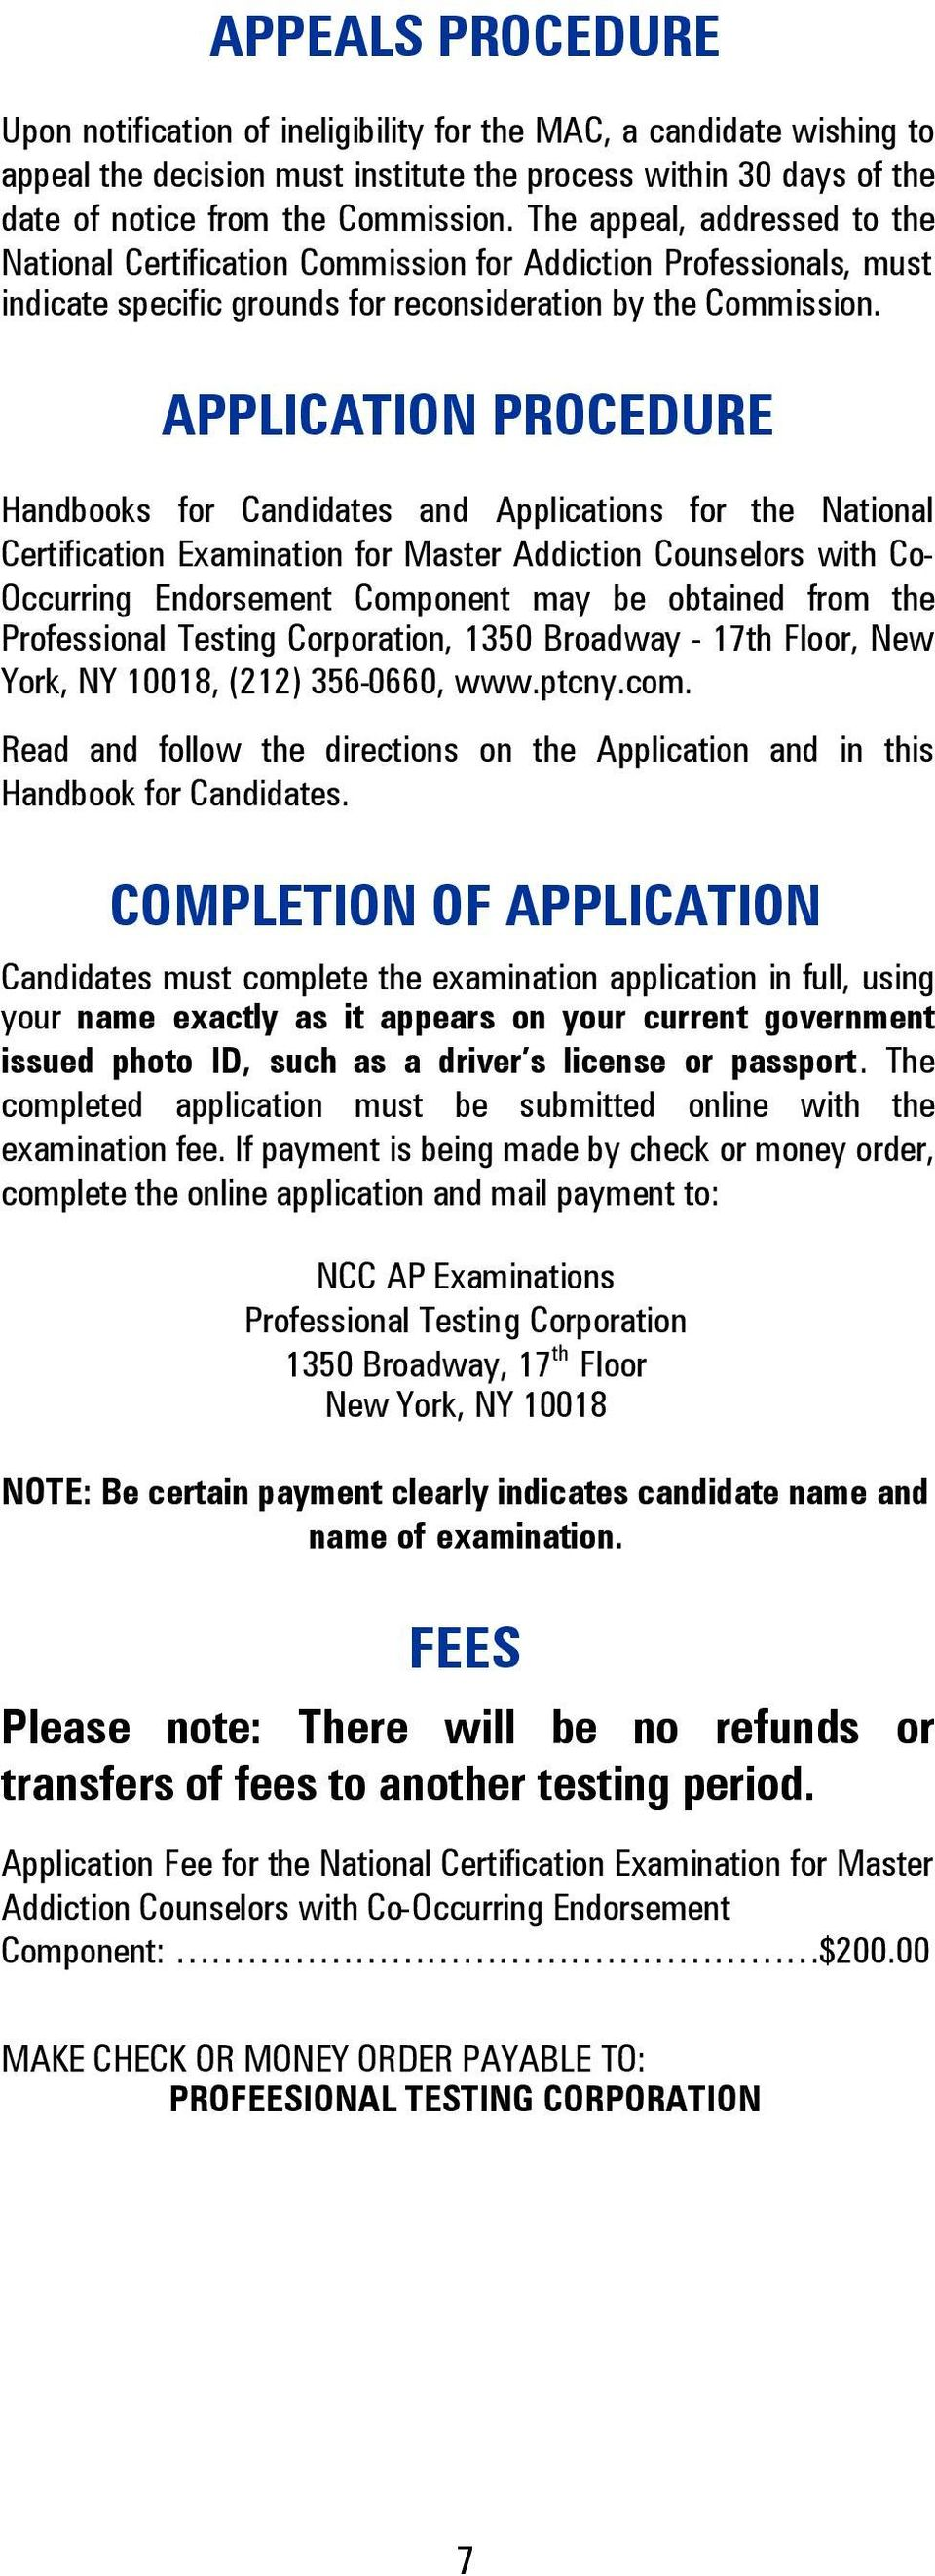 APPLICATION PROCEDURE Handbooks for Candidates and Applications for the National Certification Examination for Master Addiction Counselors with Co- Occurring Endorsement Component may be obtained